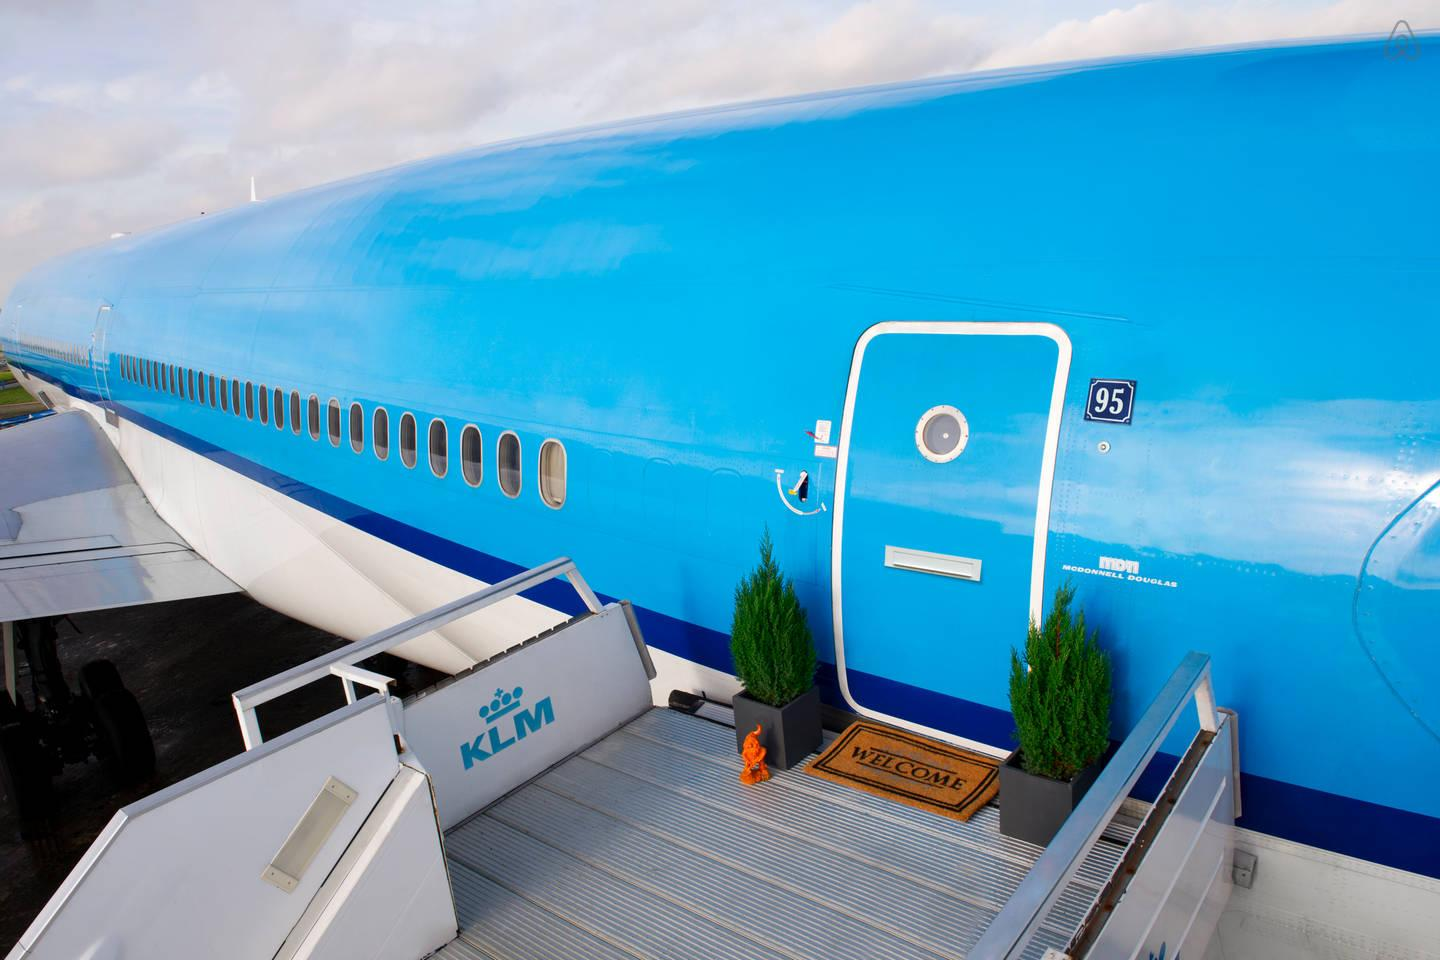 KLM has transformed one its grounded McDonnell Douglas MD-11 aircraft into a luxurious apartment